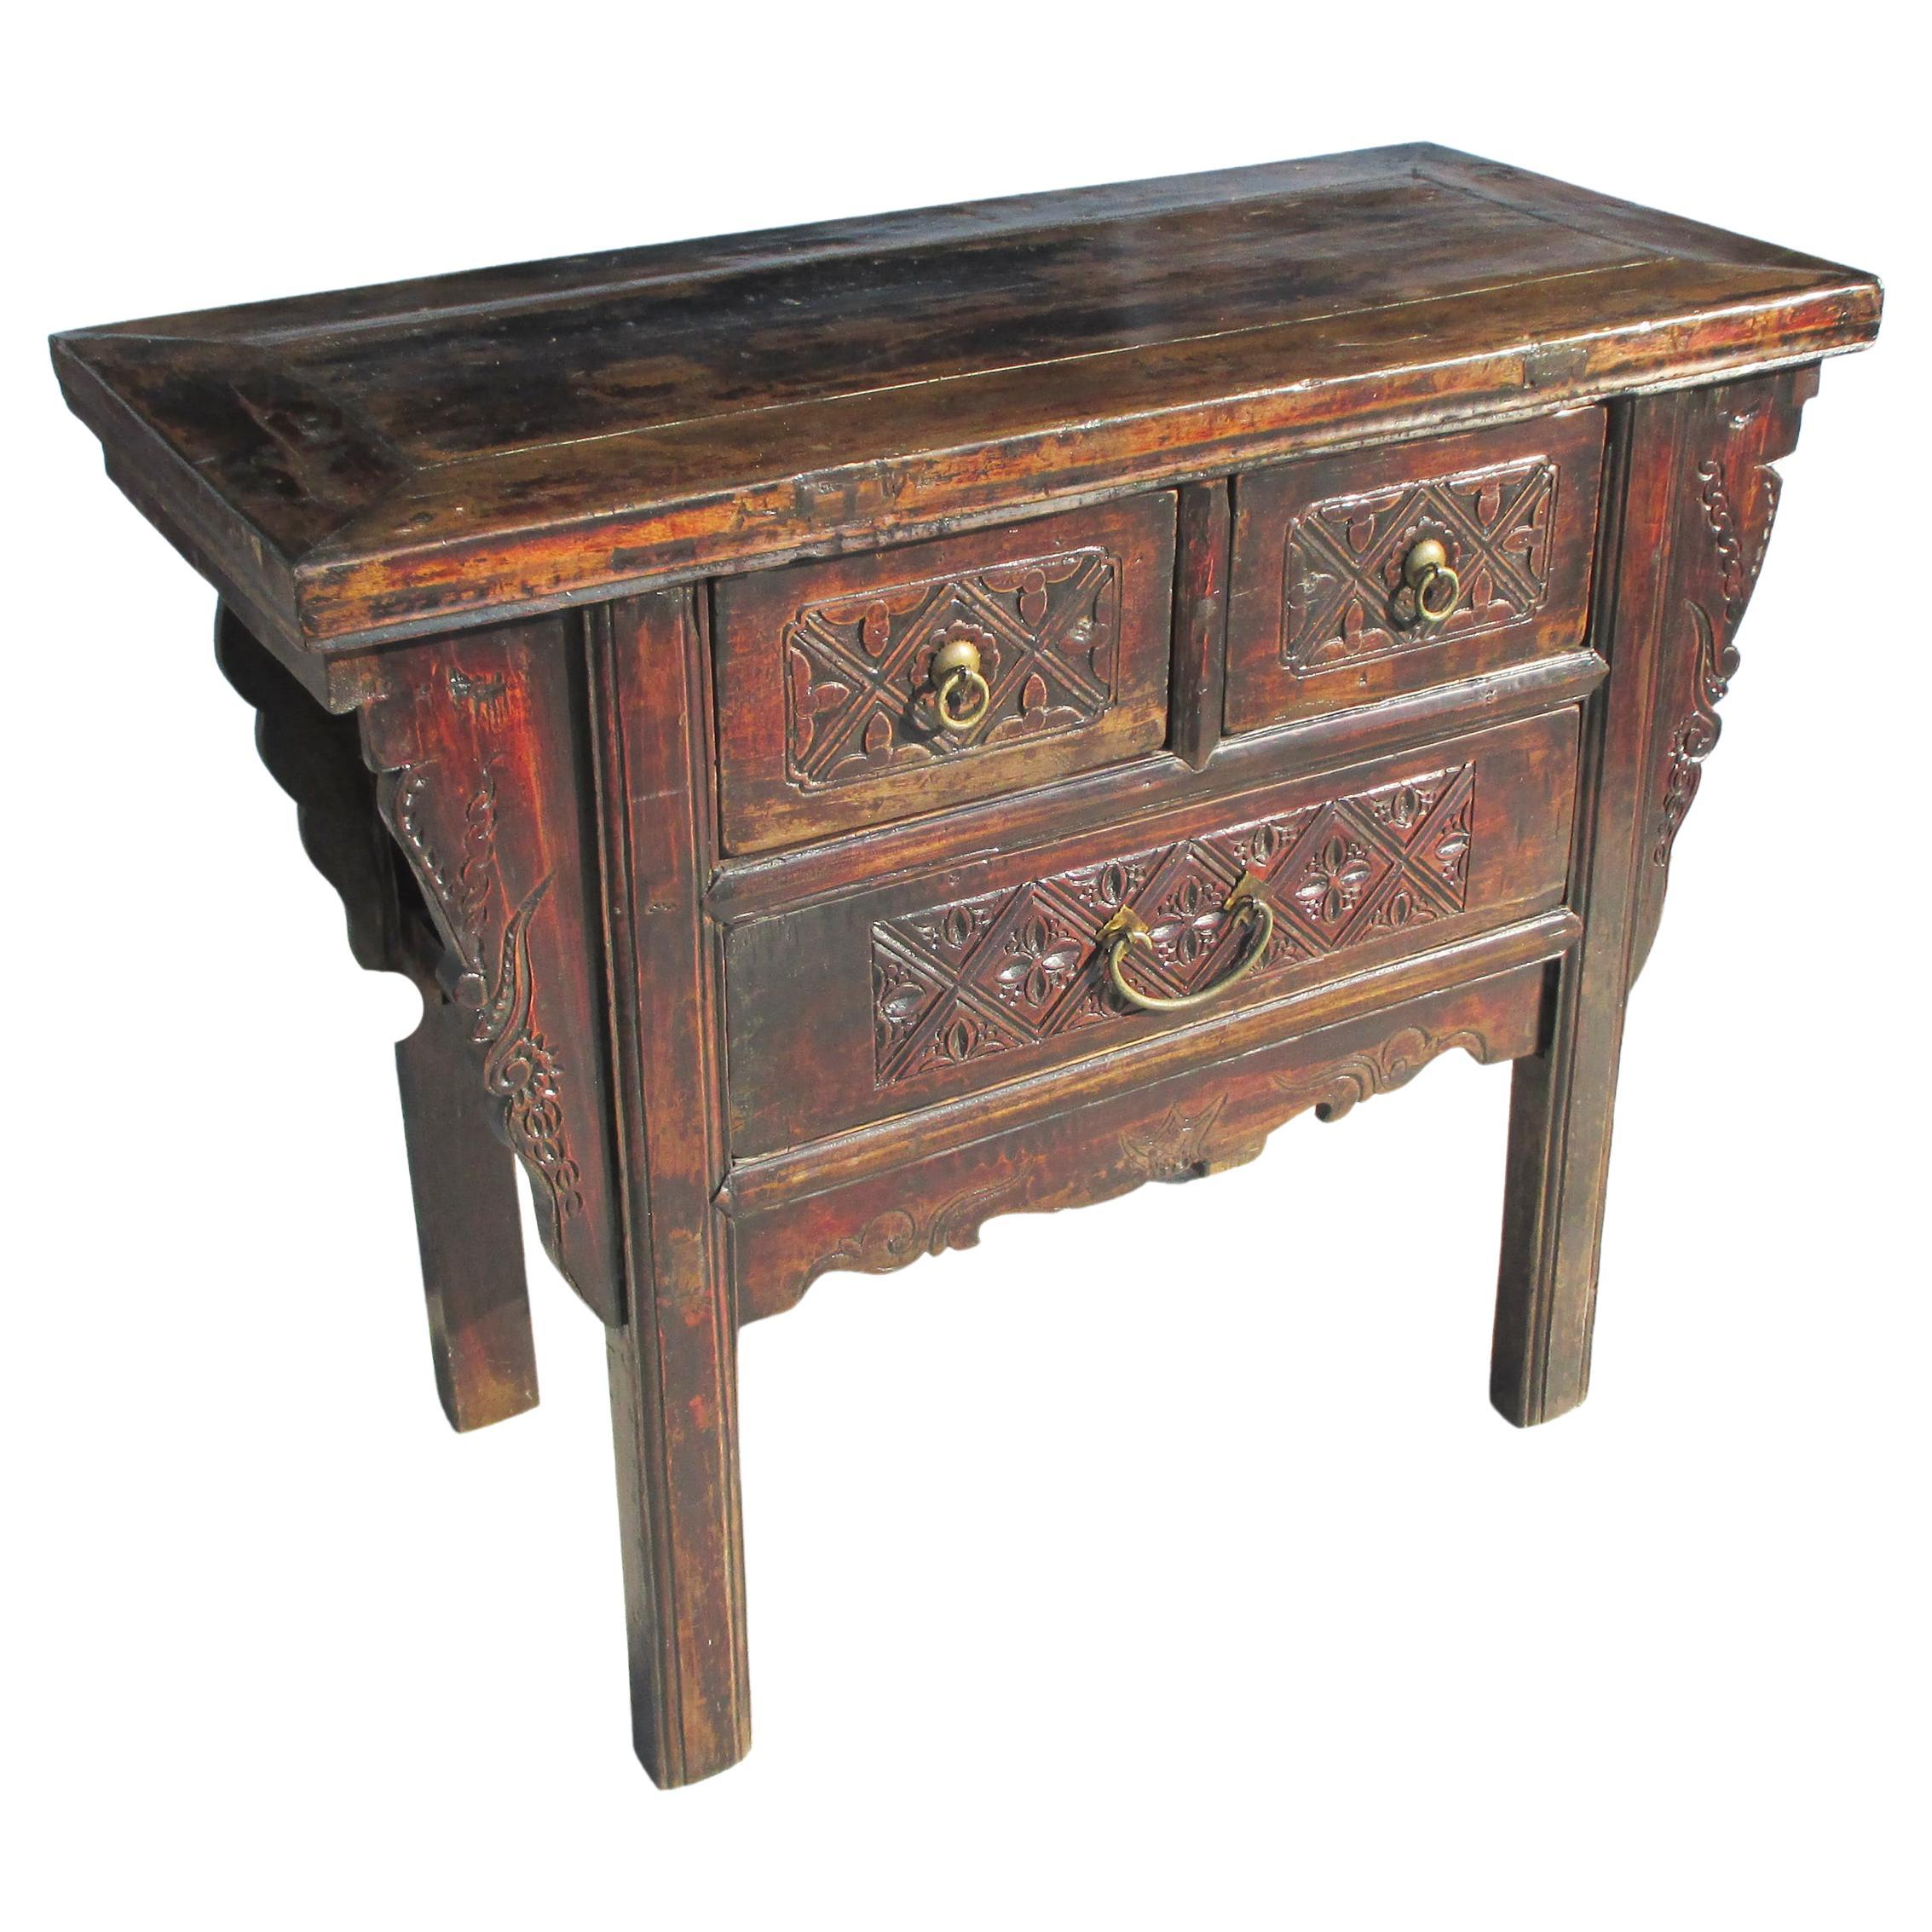 19th Century Qing Dynasty Alter Console Table